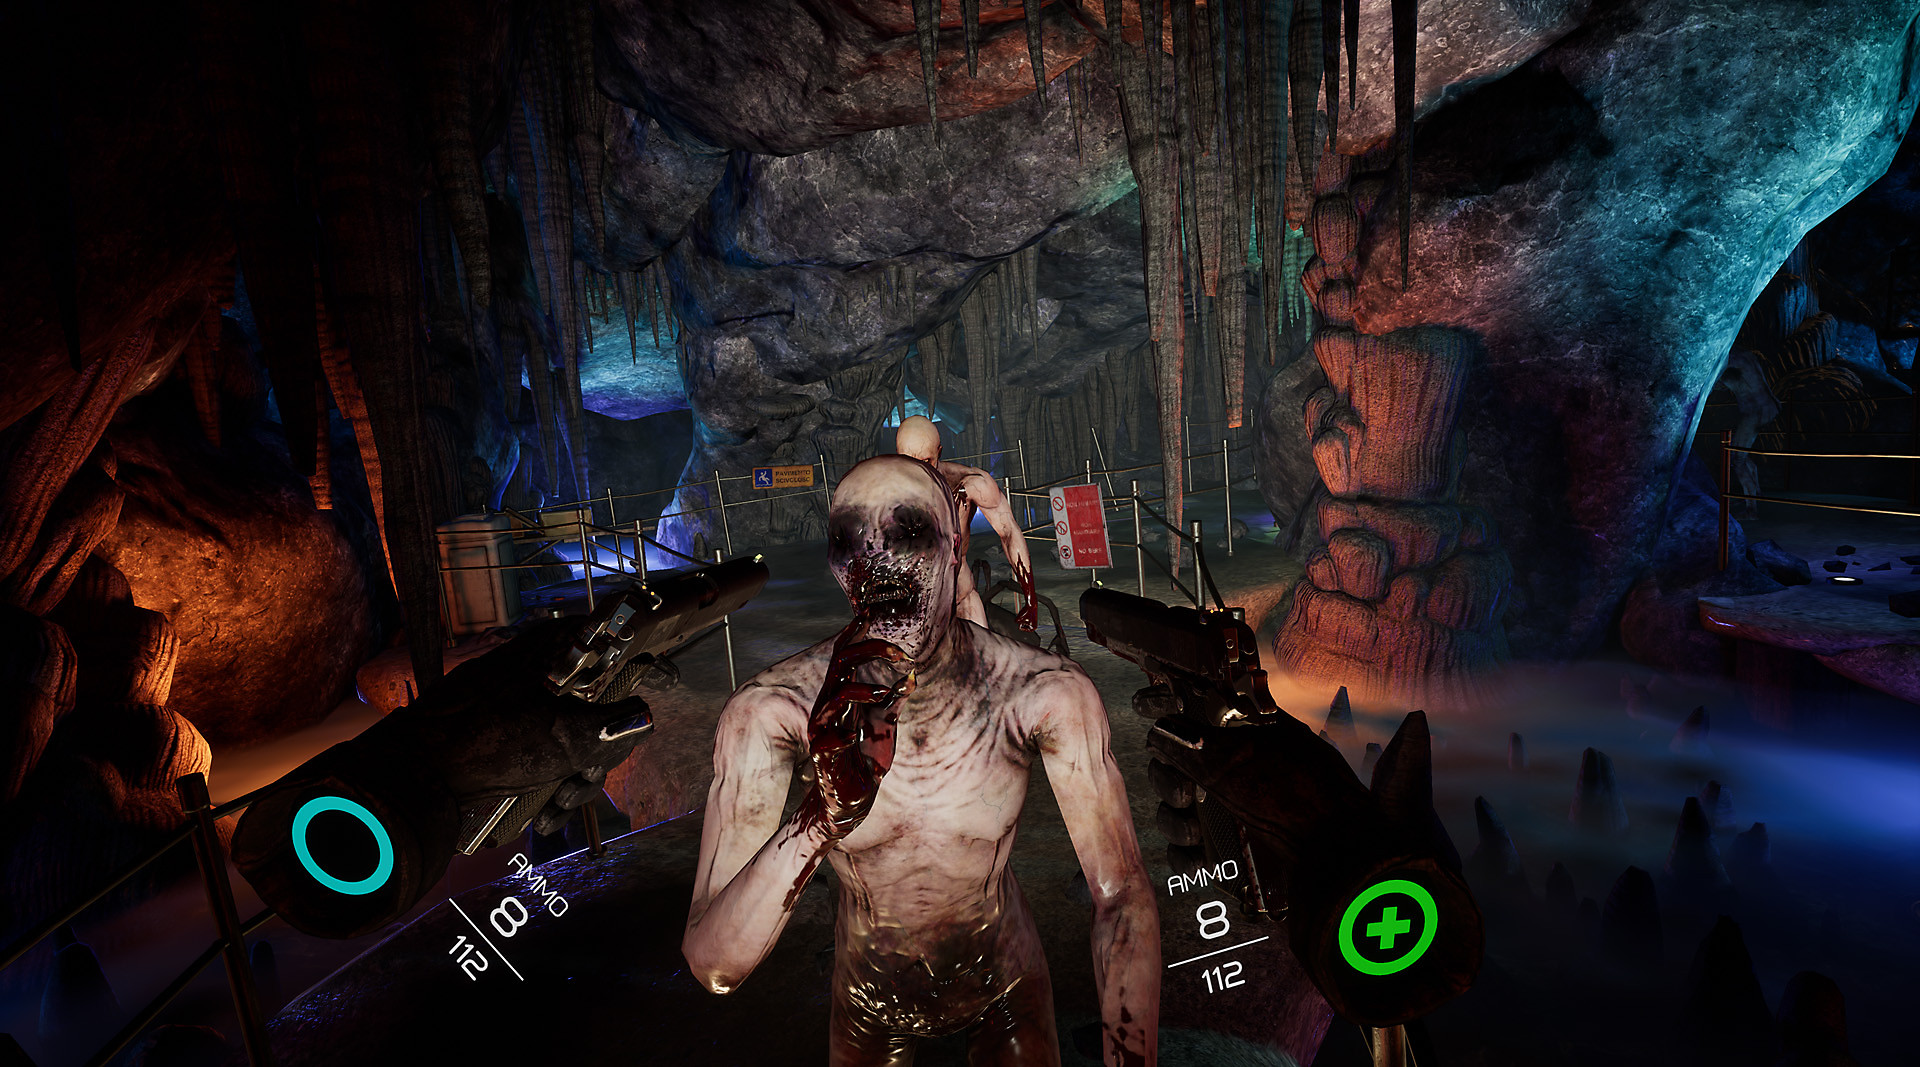 Partida de KILLING FLOOR: INCURSION